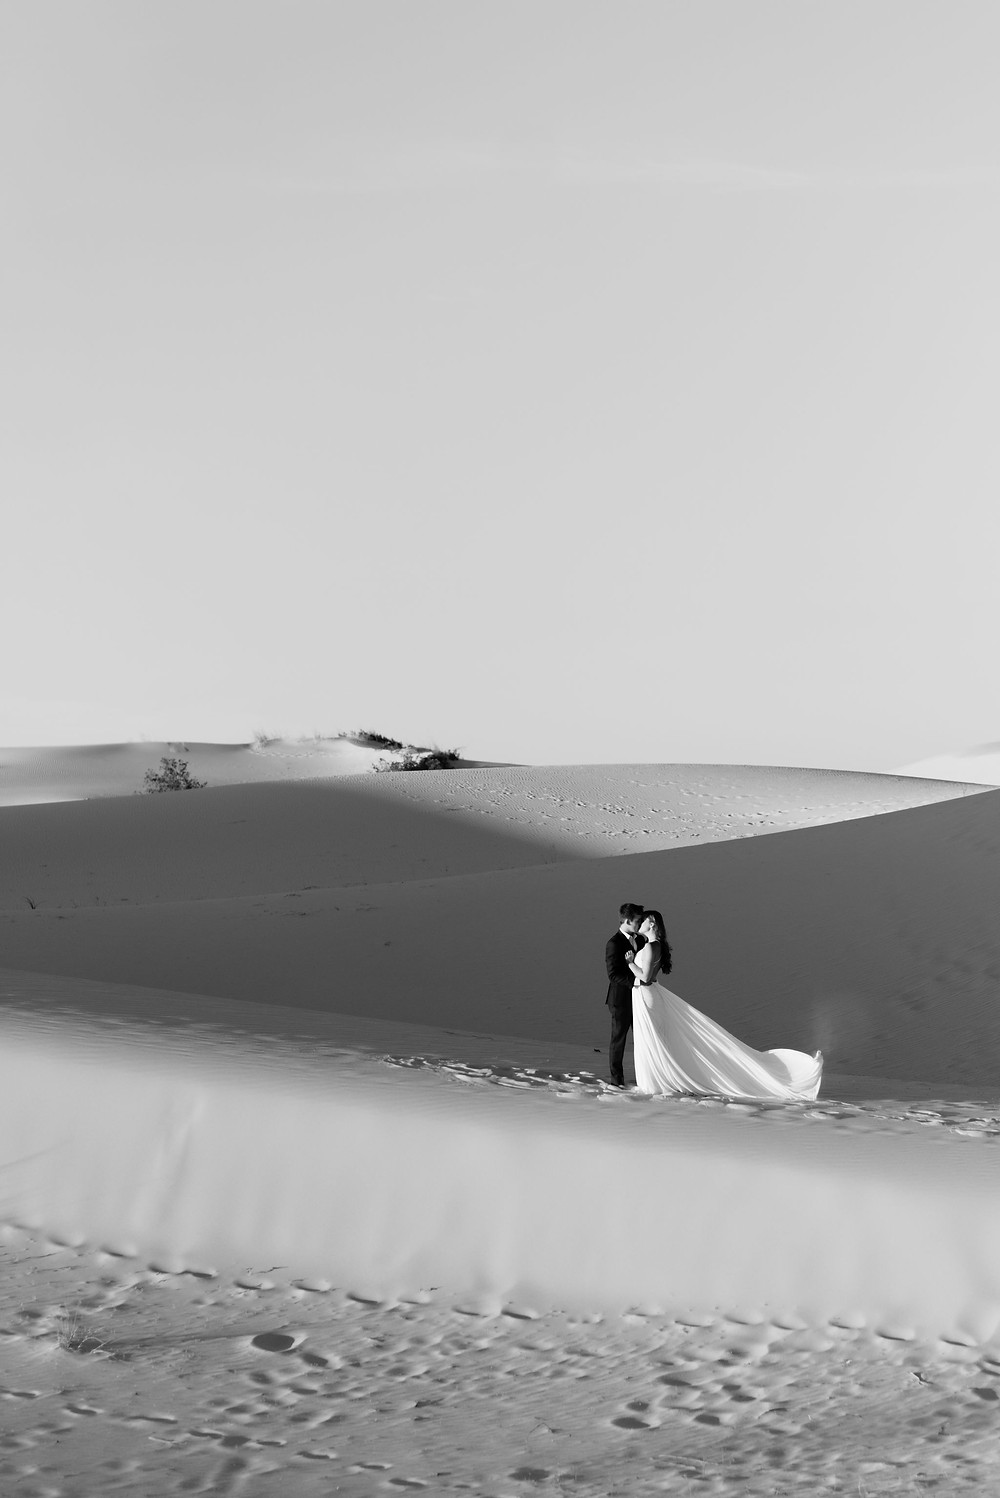 black and white heavily contrasted photo of the couple embracing during their elopement. the sun is setting so heavy shadows are cast on the side of the sandhills